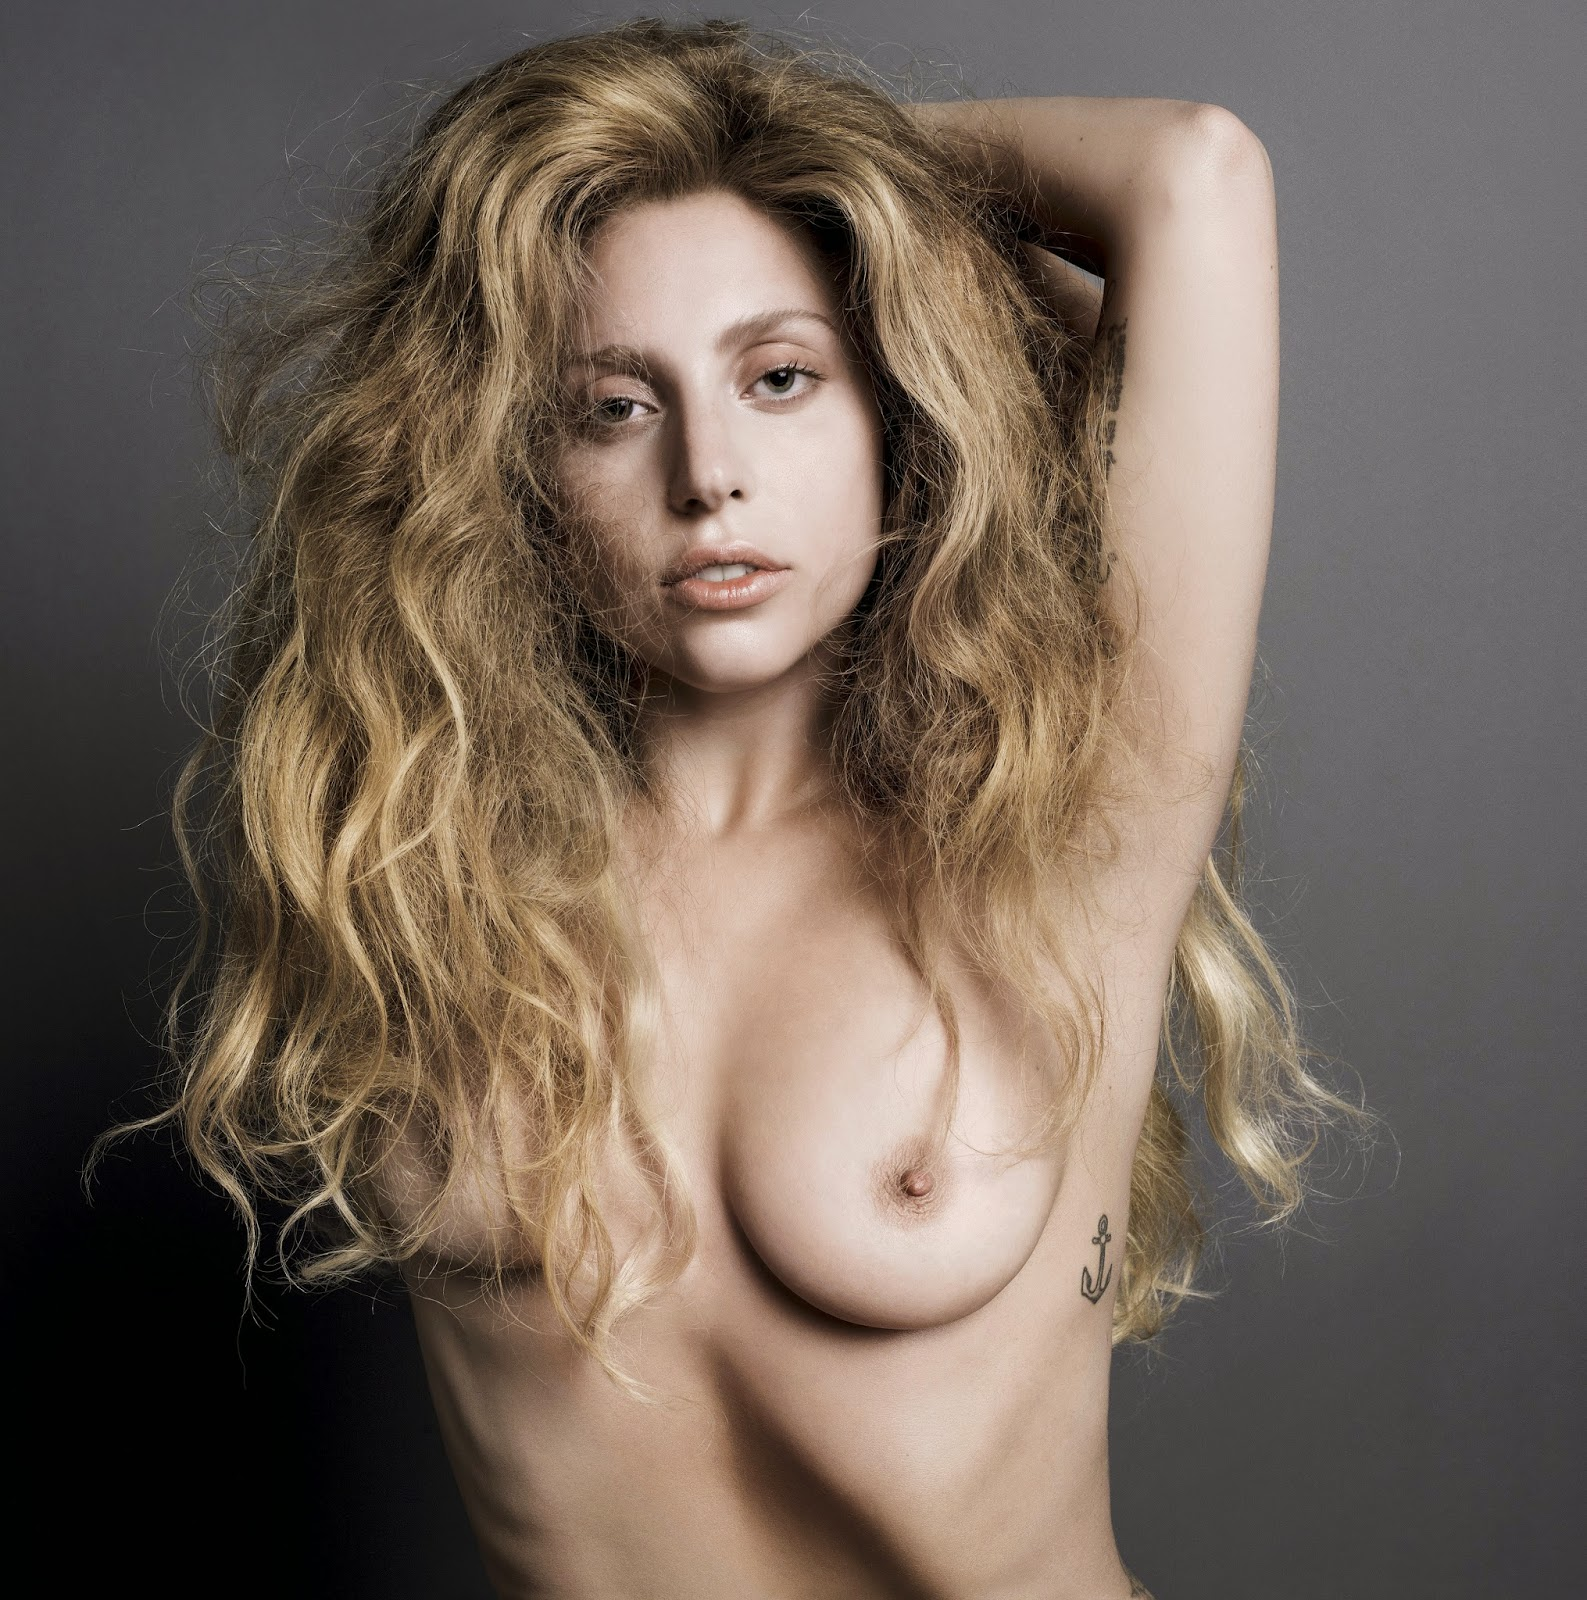 Gaga boobs nude